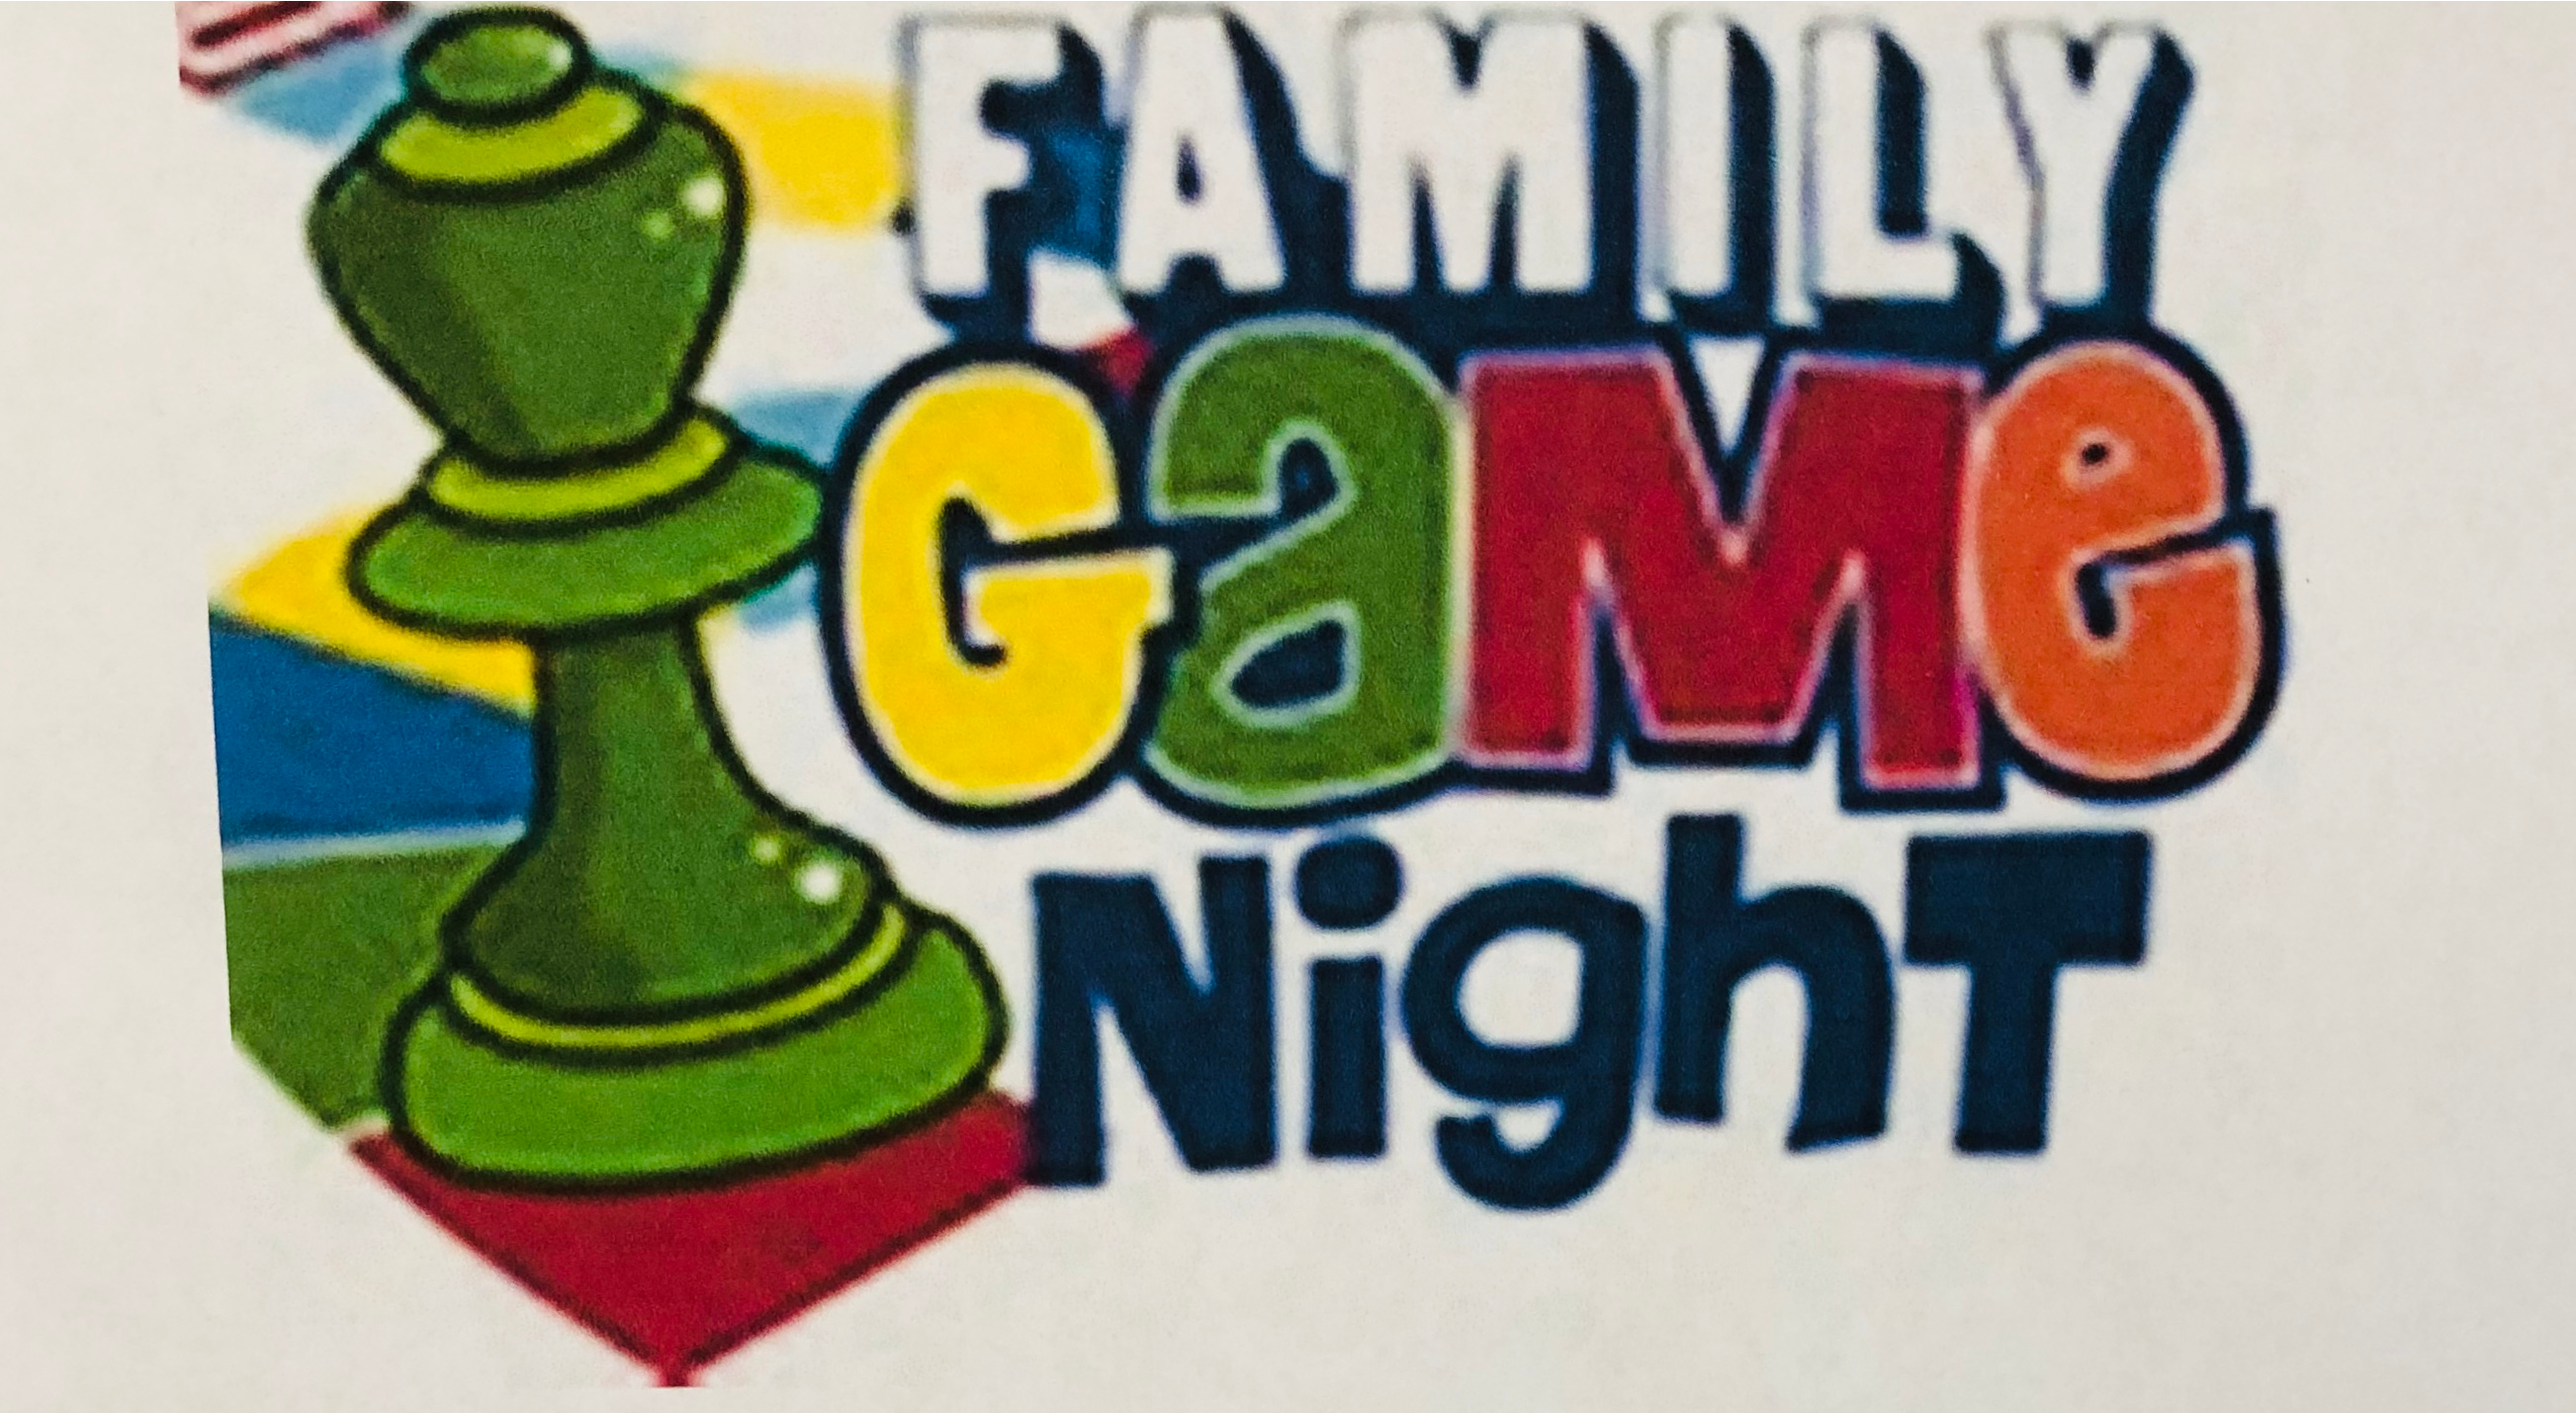 Family Game Night 6:30-8:00 pm Westview UMC Join us for a fun-filled evening of family friendly games!